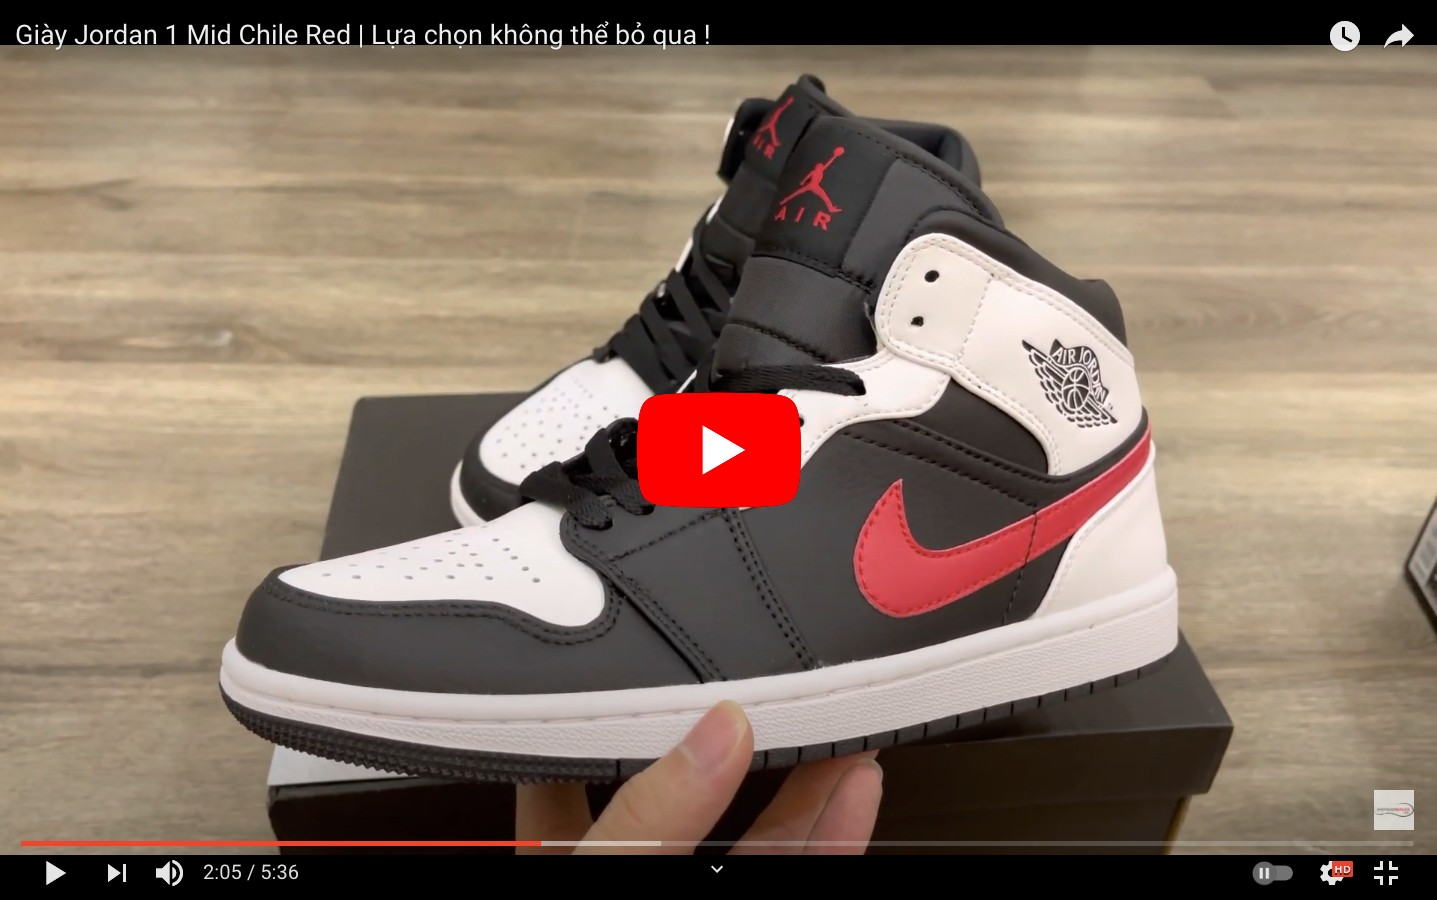 Video jordan 1 mid chile red white